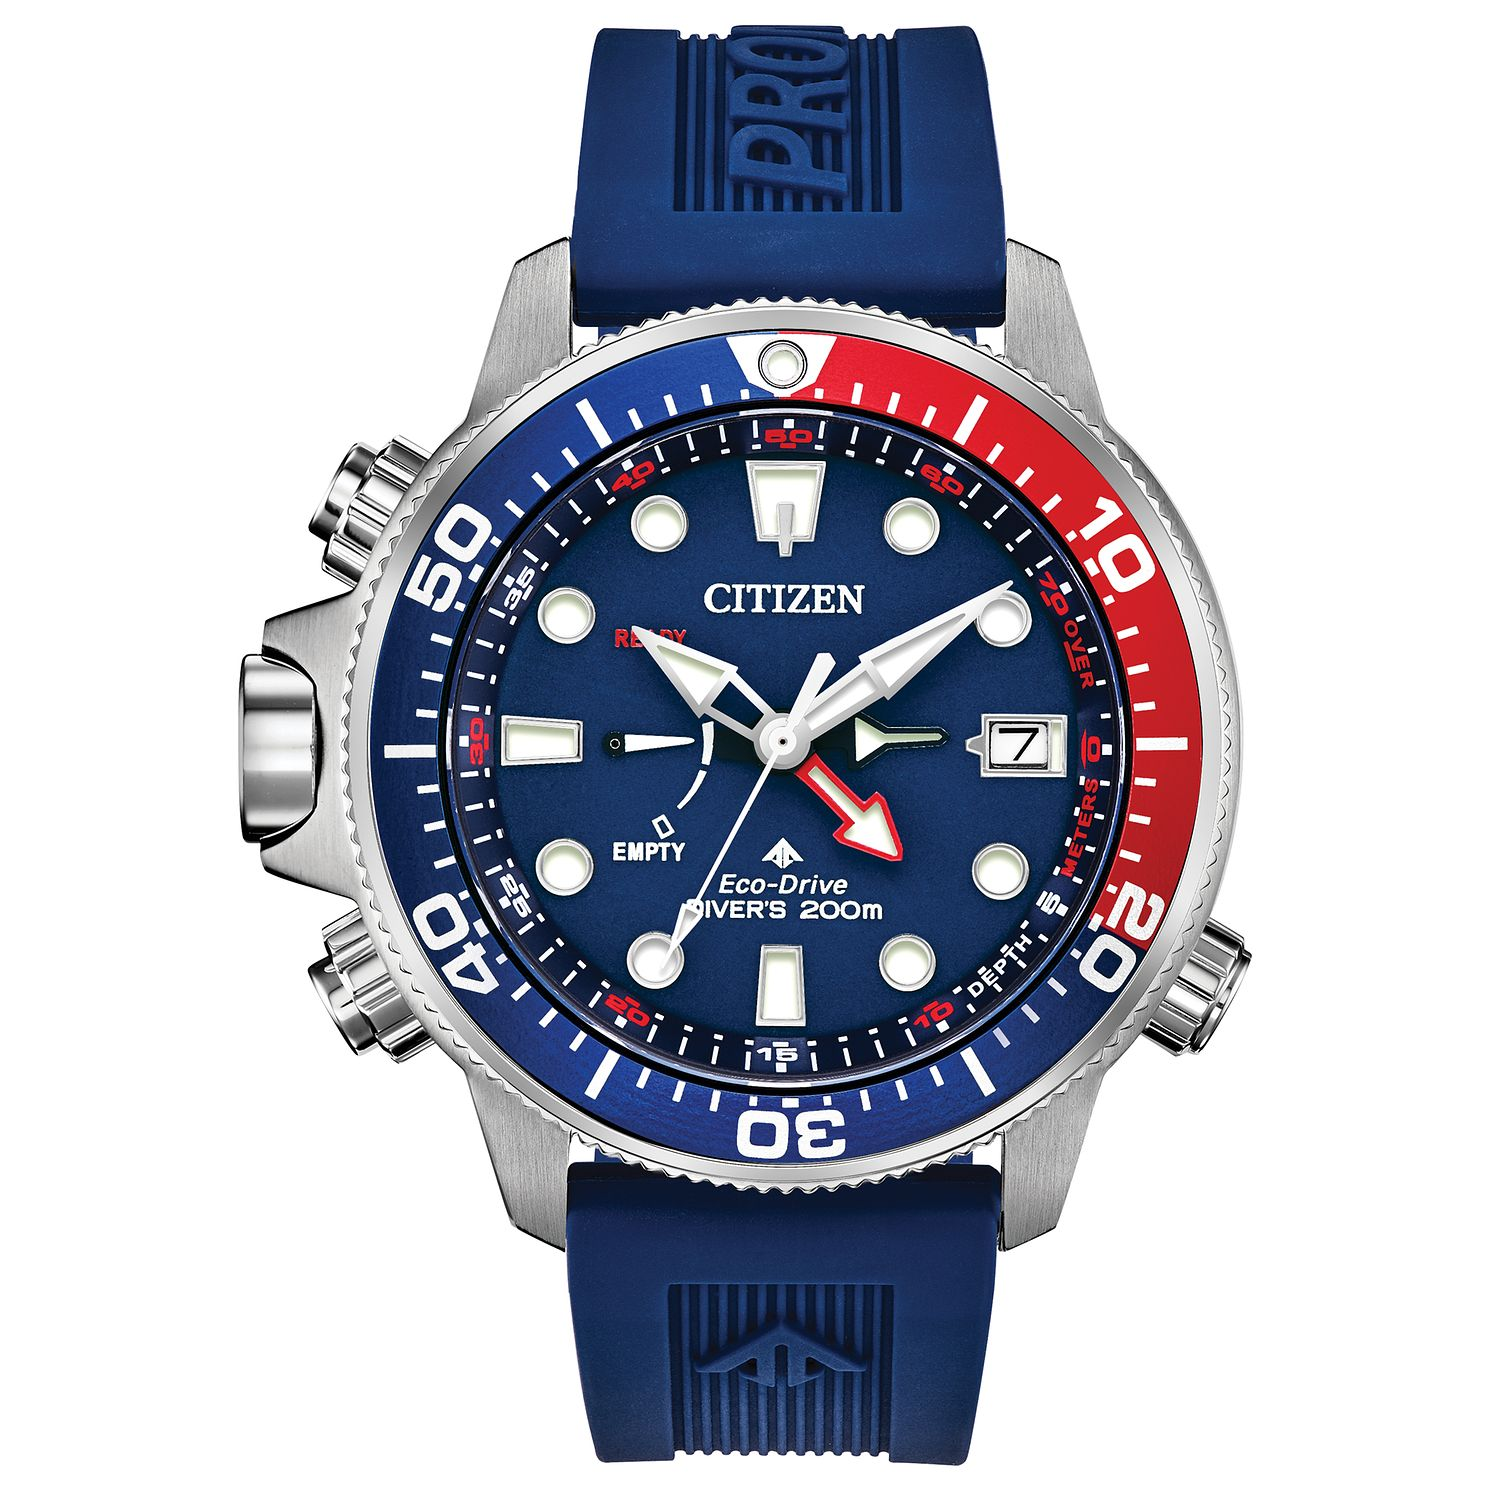 Citizen Promaster Aqualand Men's Blue Resin Strap Watch - Product number 2948370